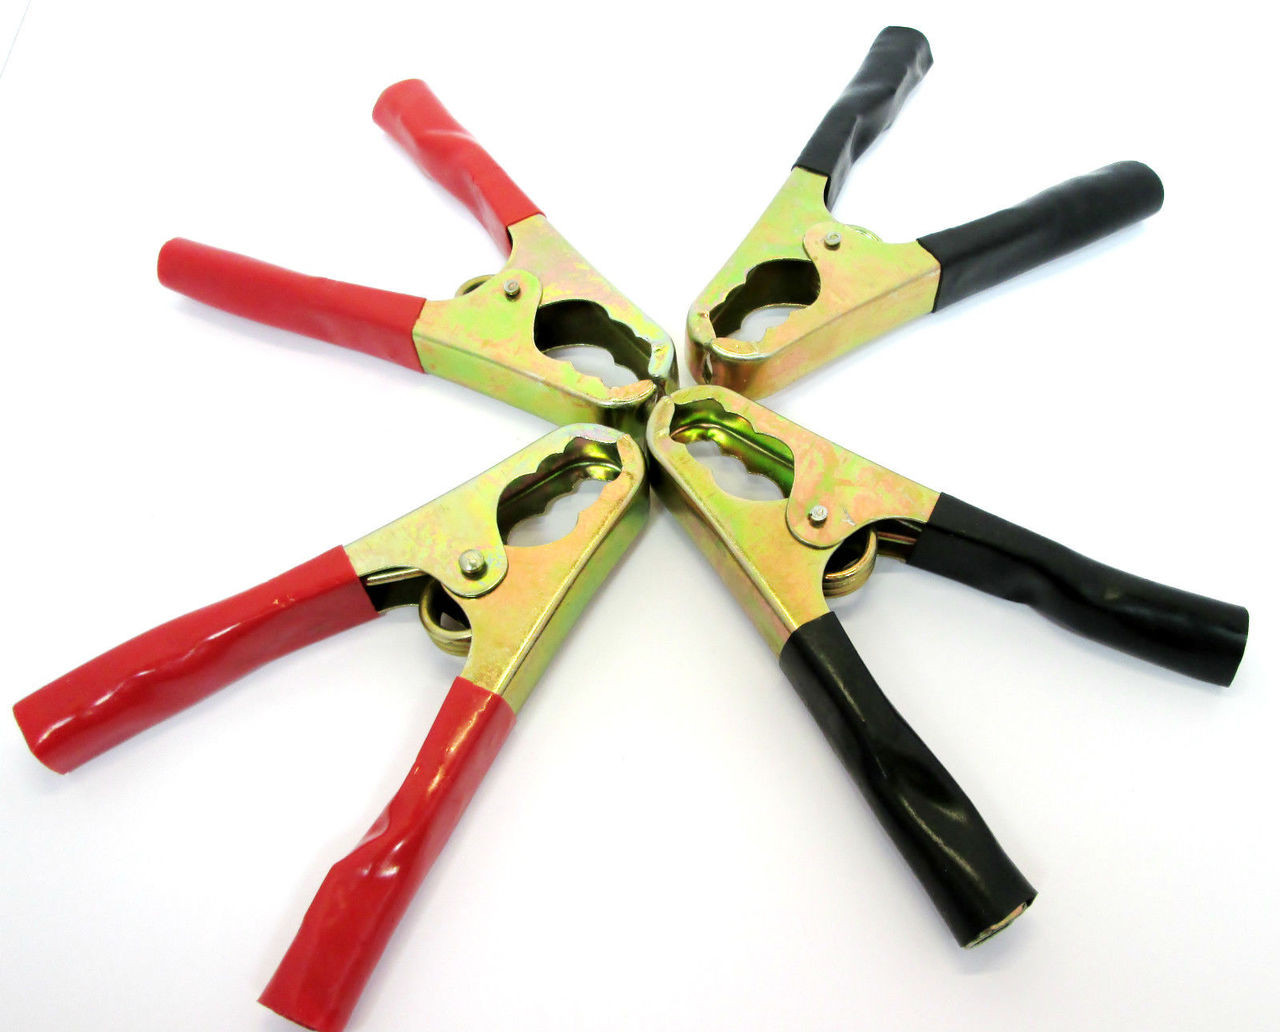 5x Pairs Of Black /& Red Small Crocodile Clips Insulated 38mm Alligator//Croc Clips